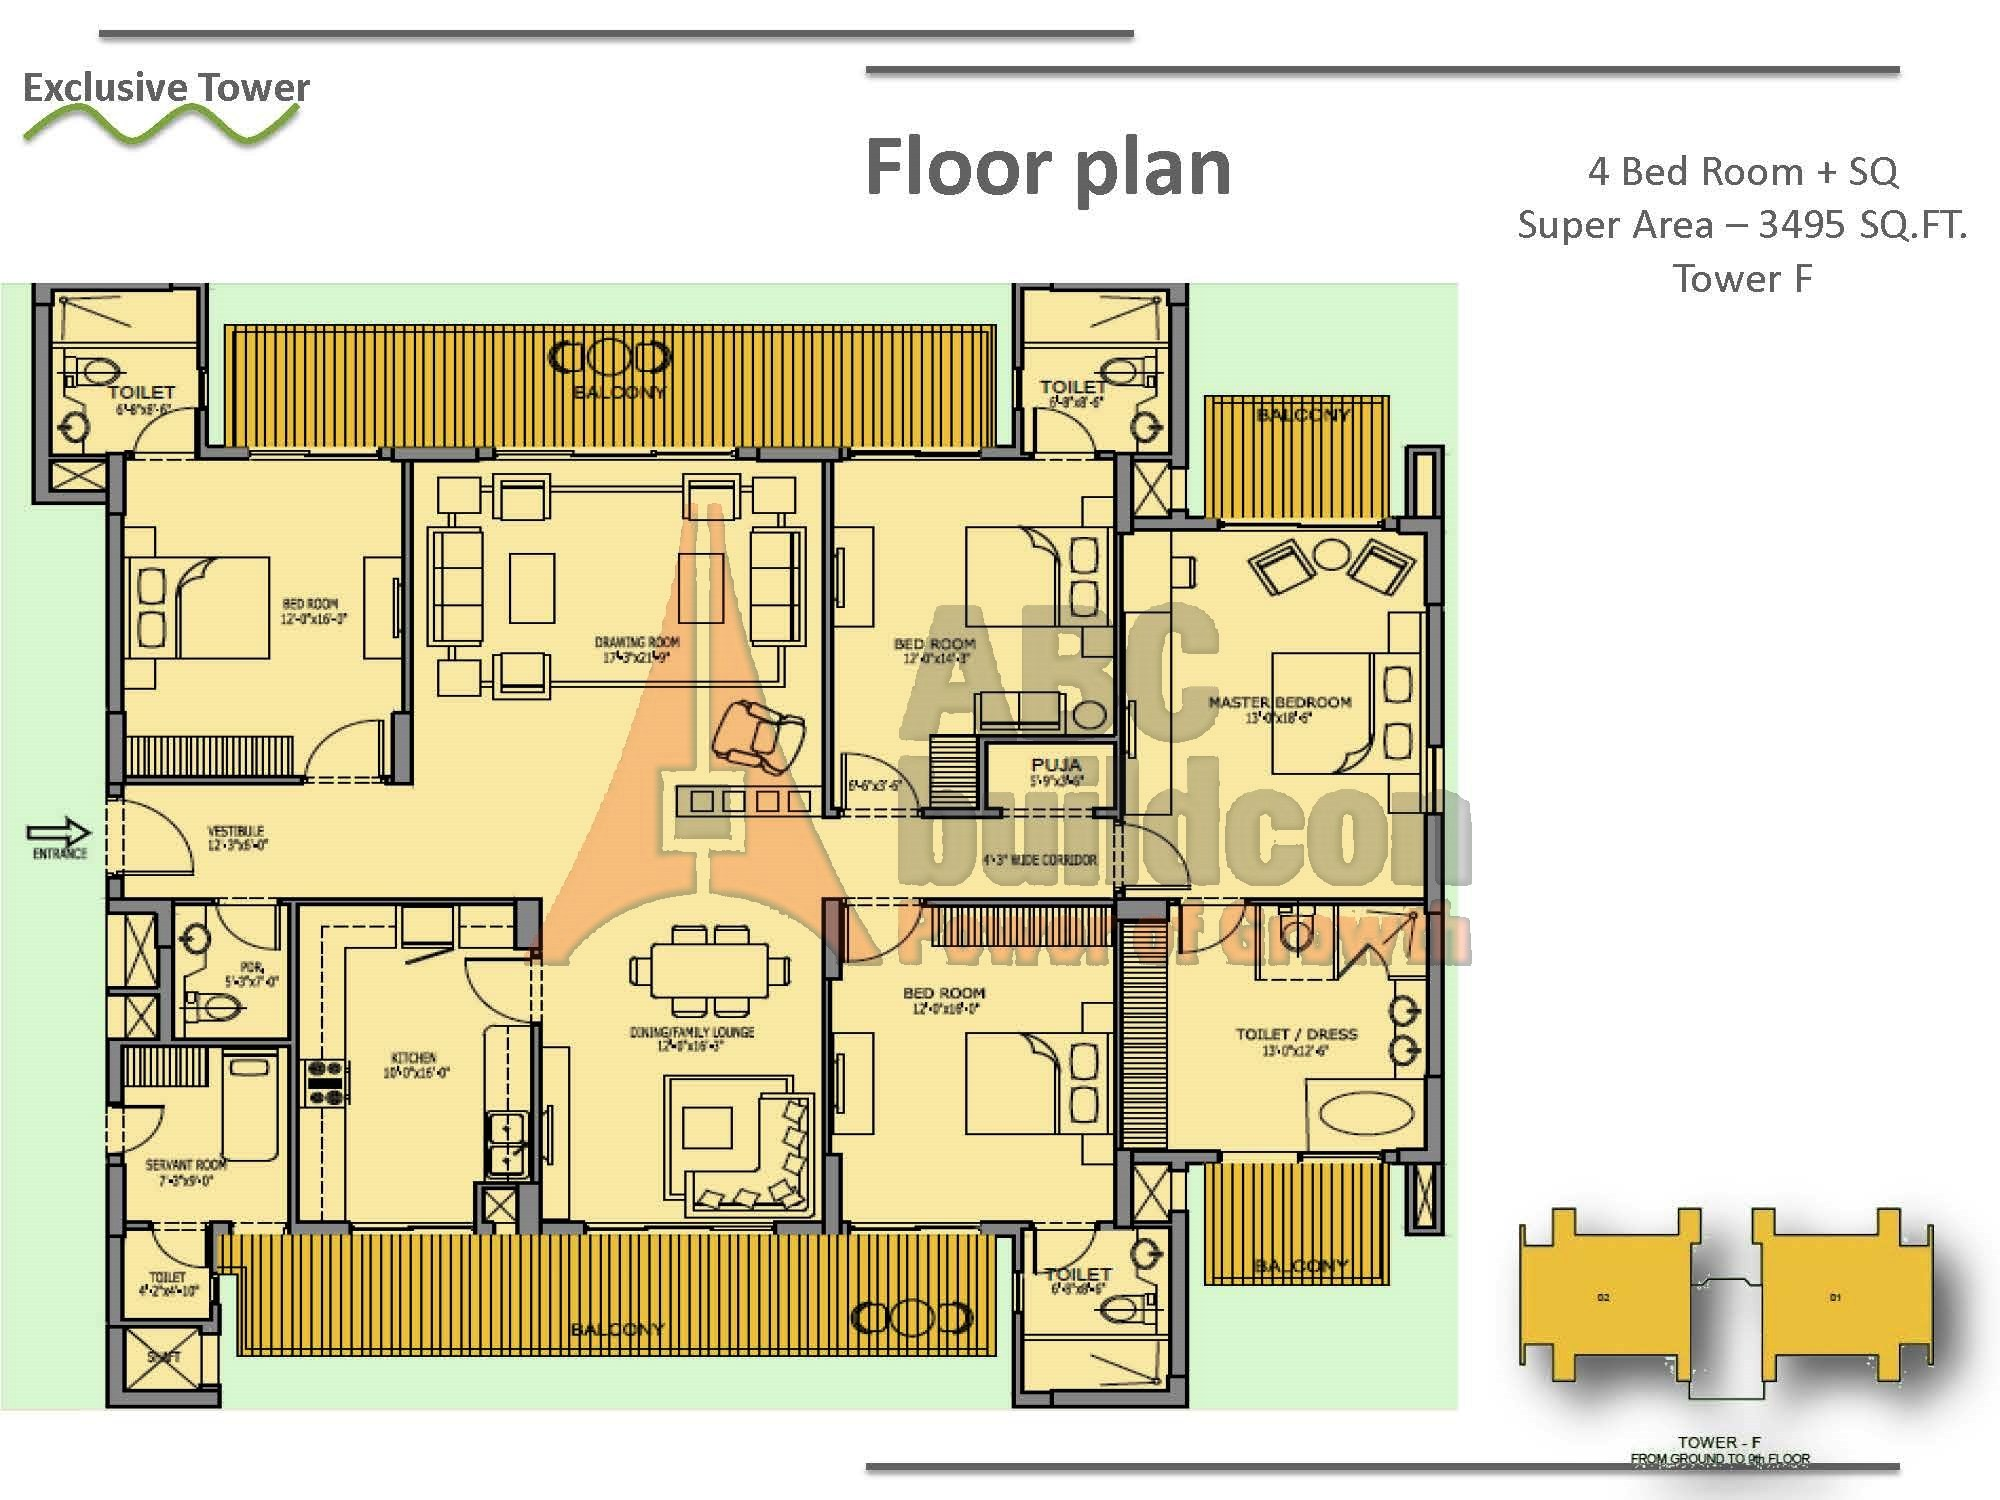 Bestech Park View Spa Floor Plan Floorplan In